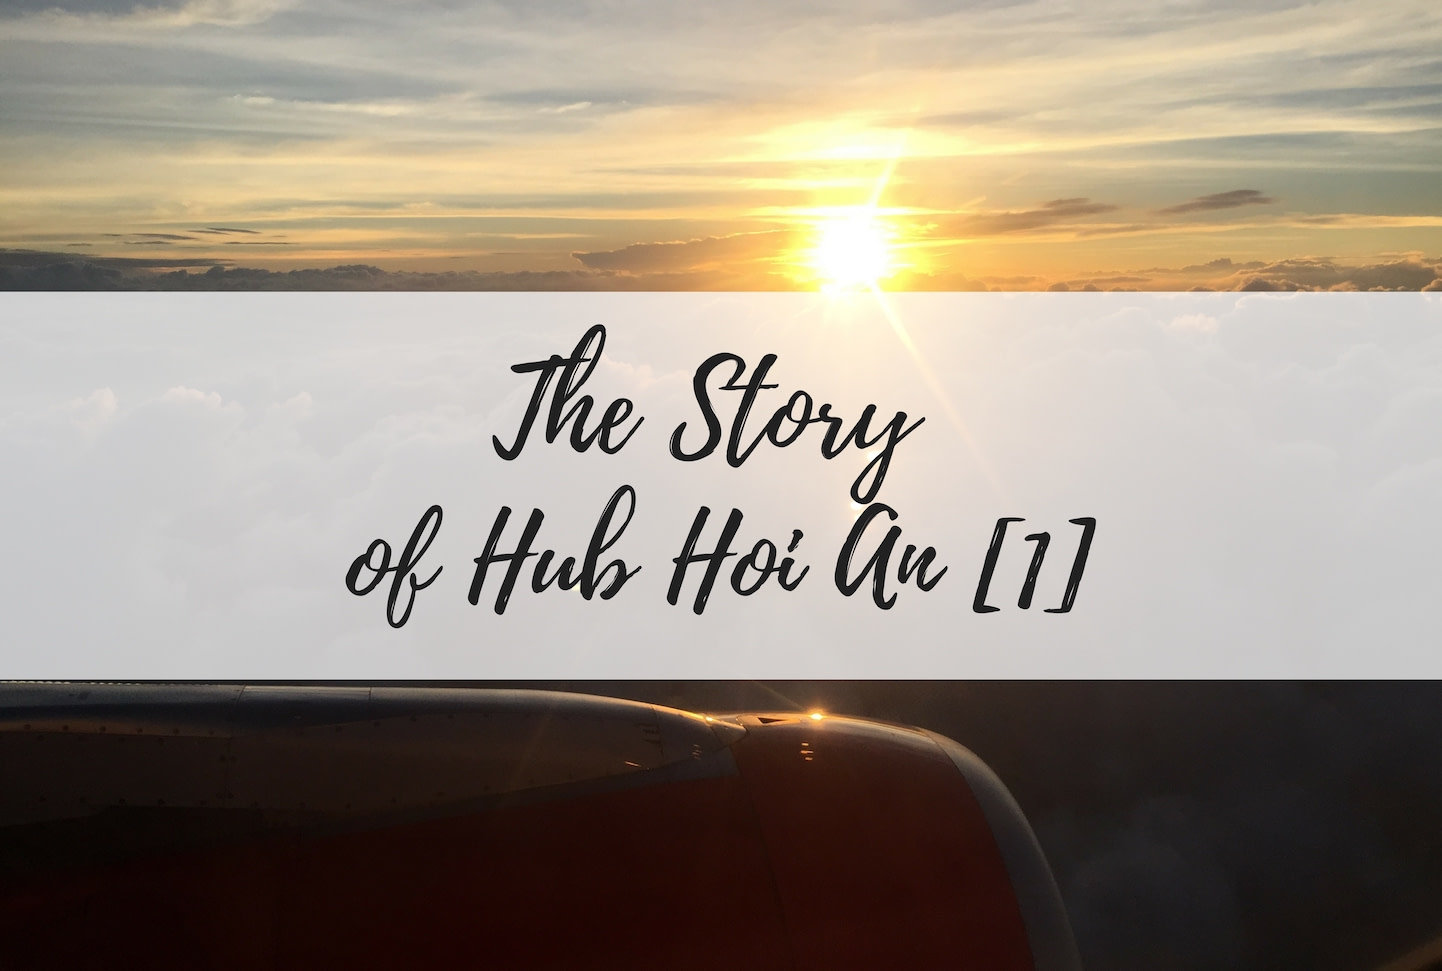 The Story of Hub Hoi An [1]